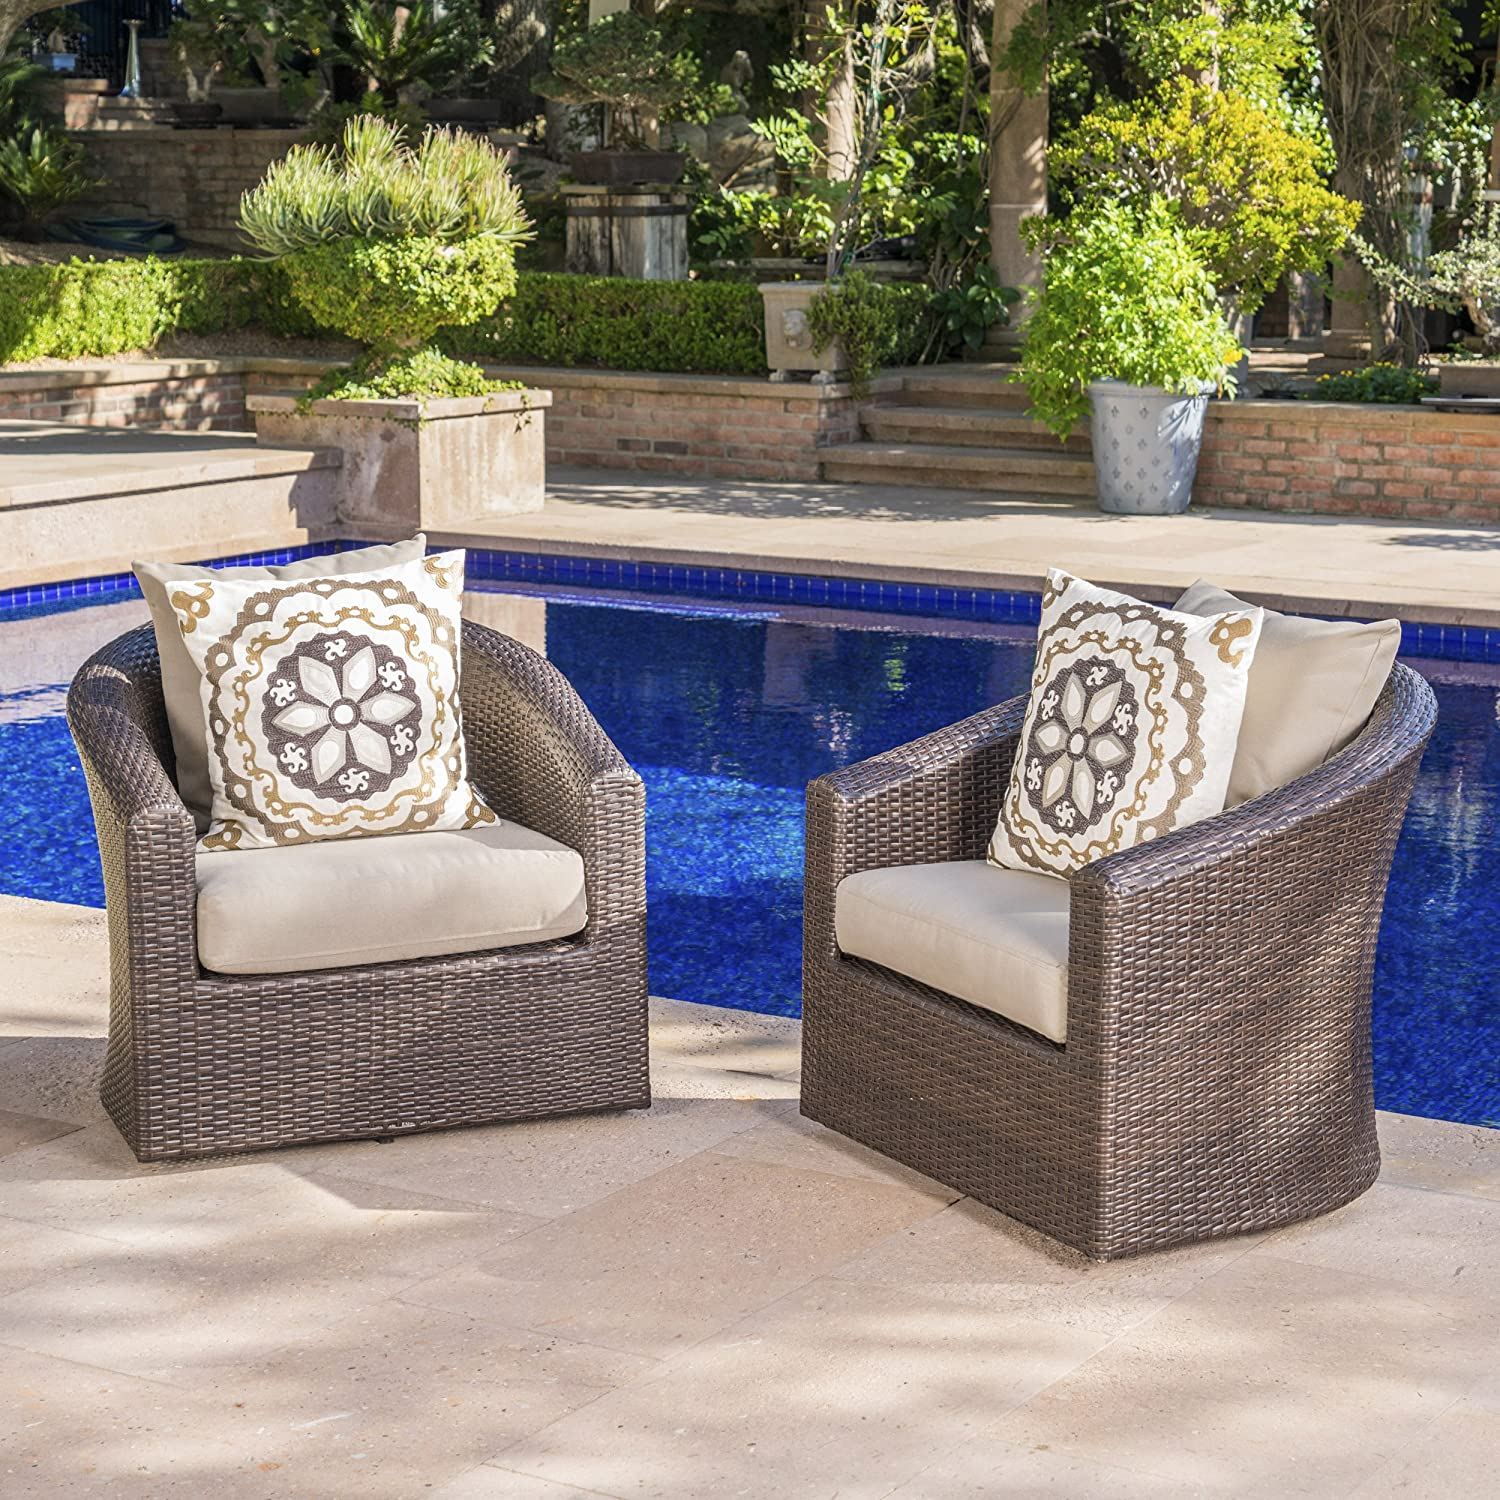 Dillard Outdoor Aluminum Framed Mix Brown Wicker Swivel Club Chair with Water Resistant Cushions Set of 2, Mix Khaki